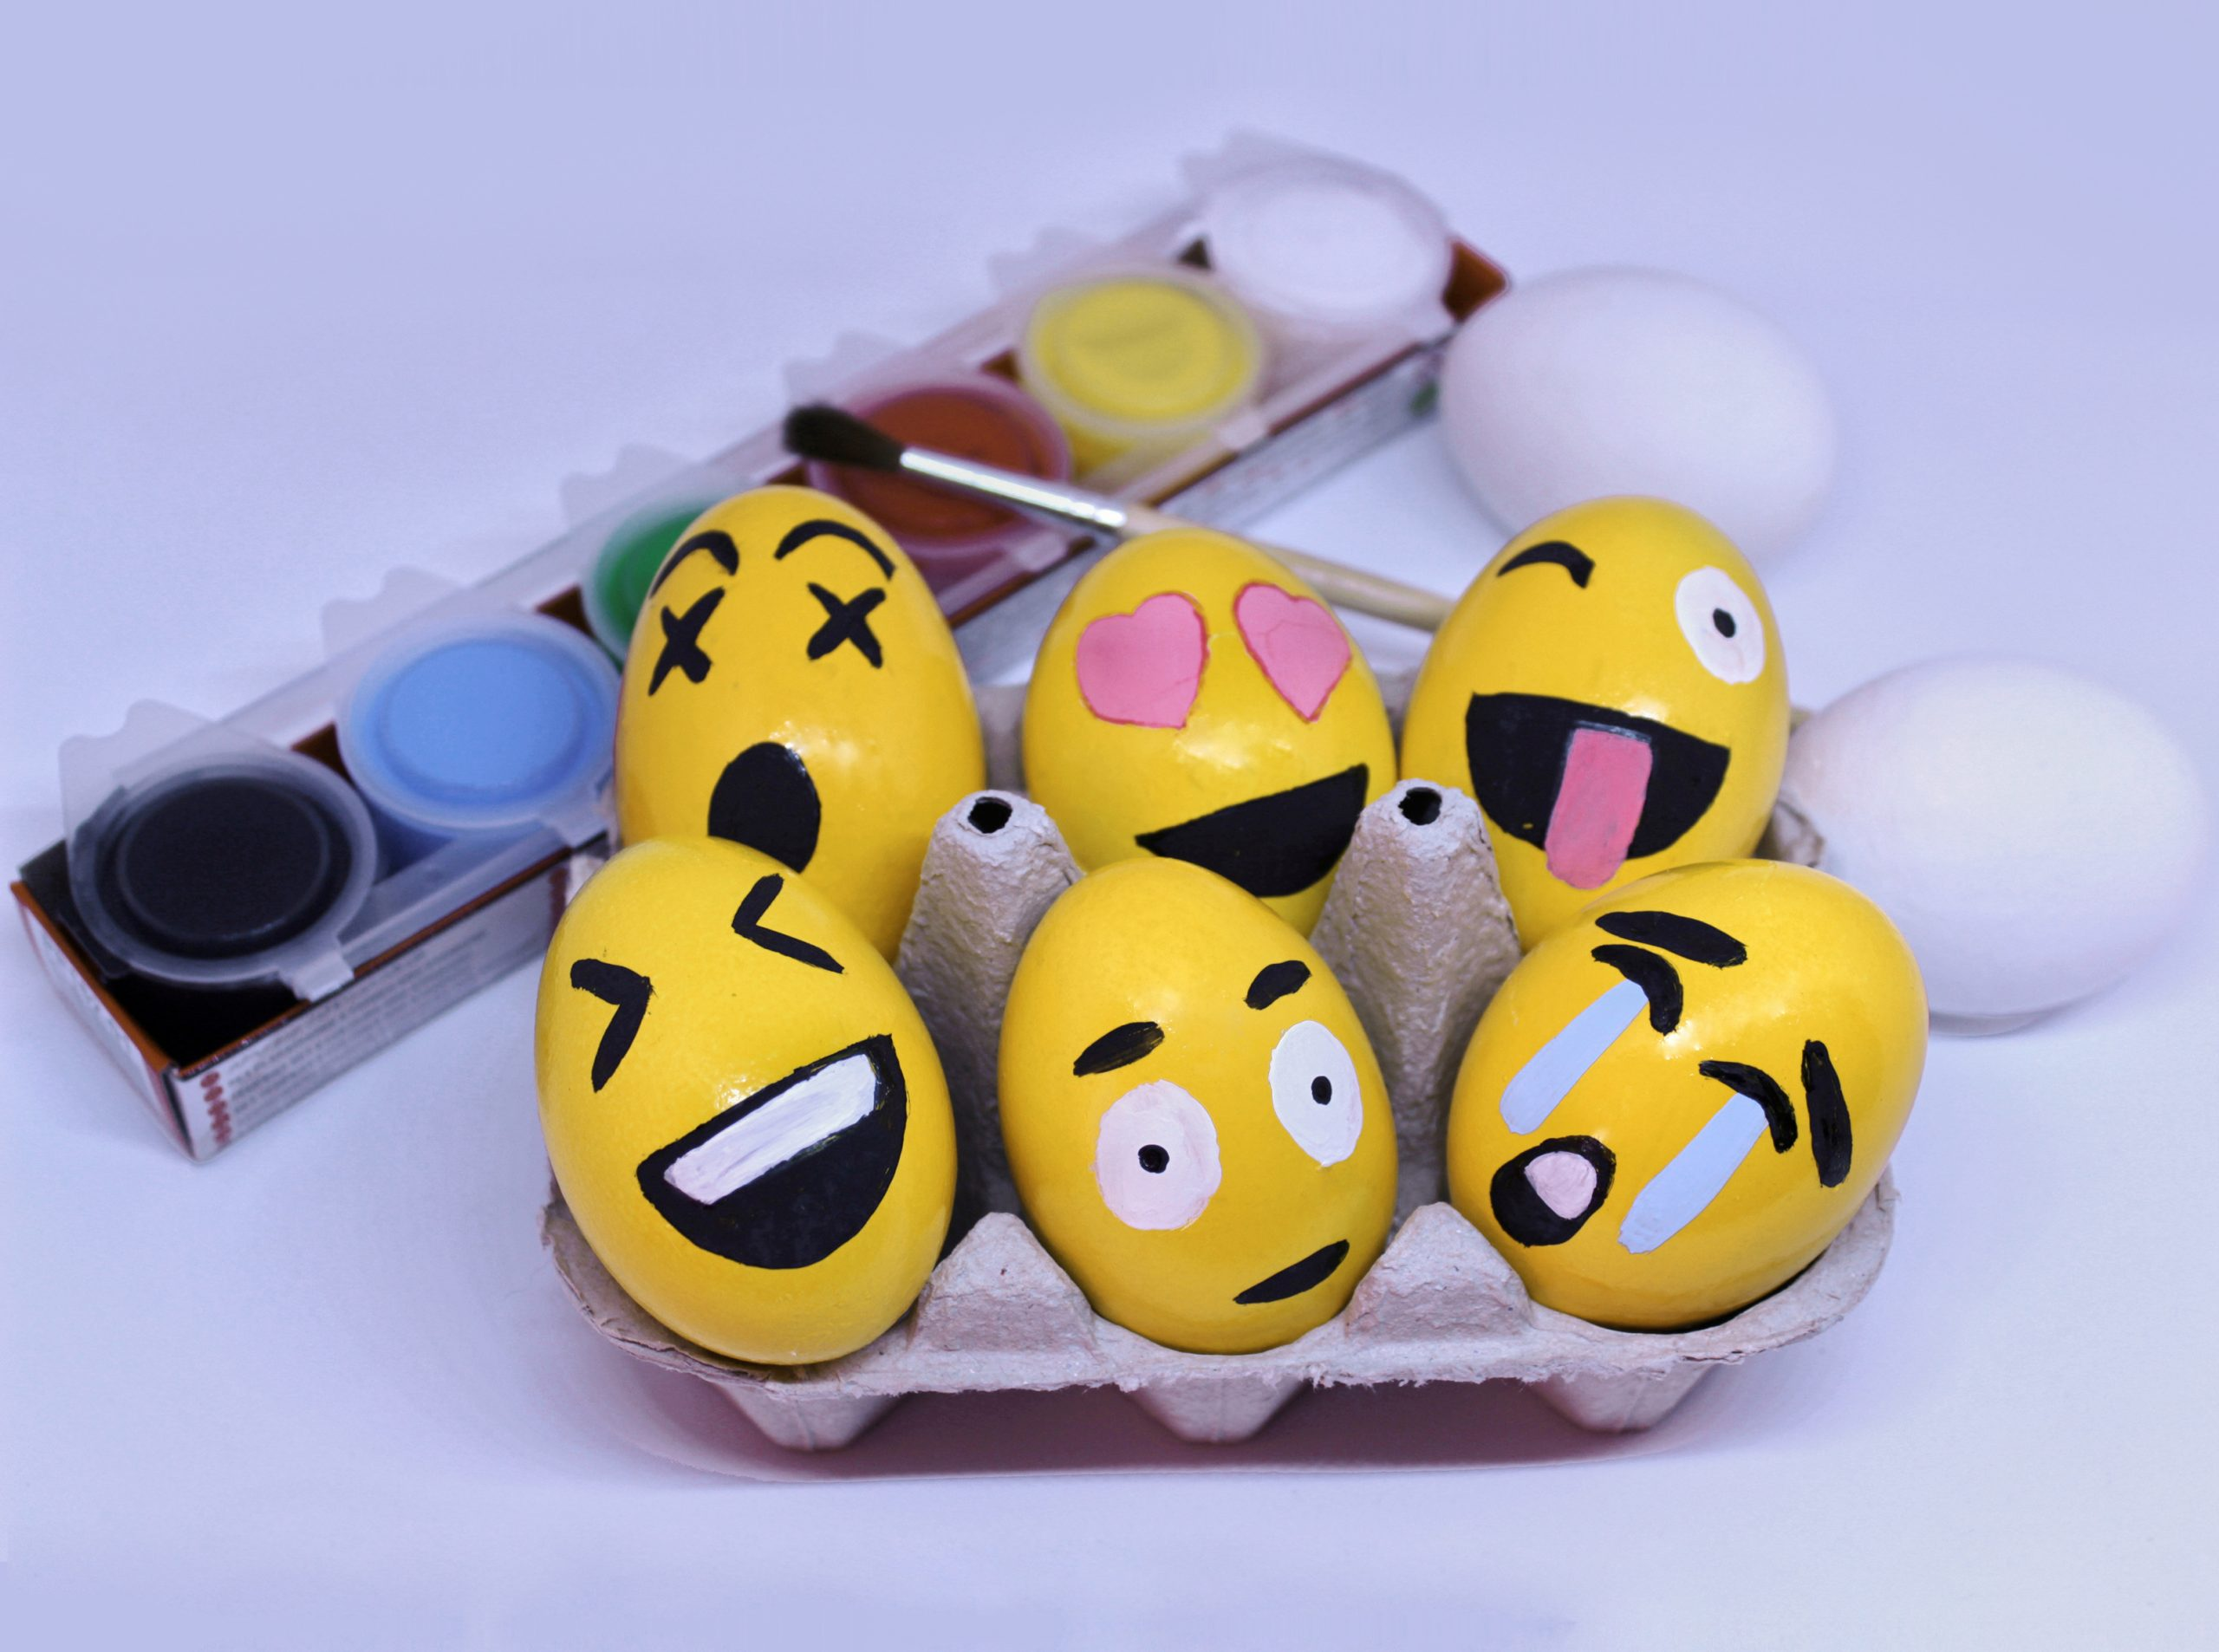 Emoticons Easter Eggs in egg-cup , paints and brush with white background